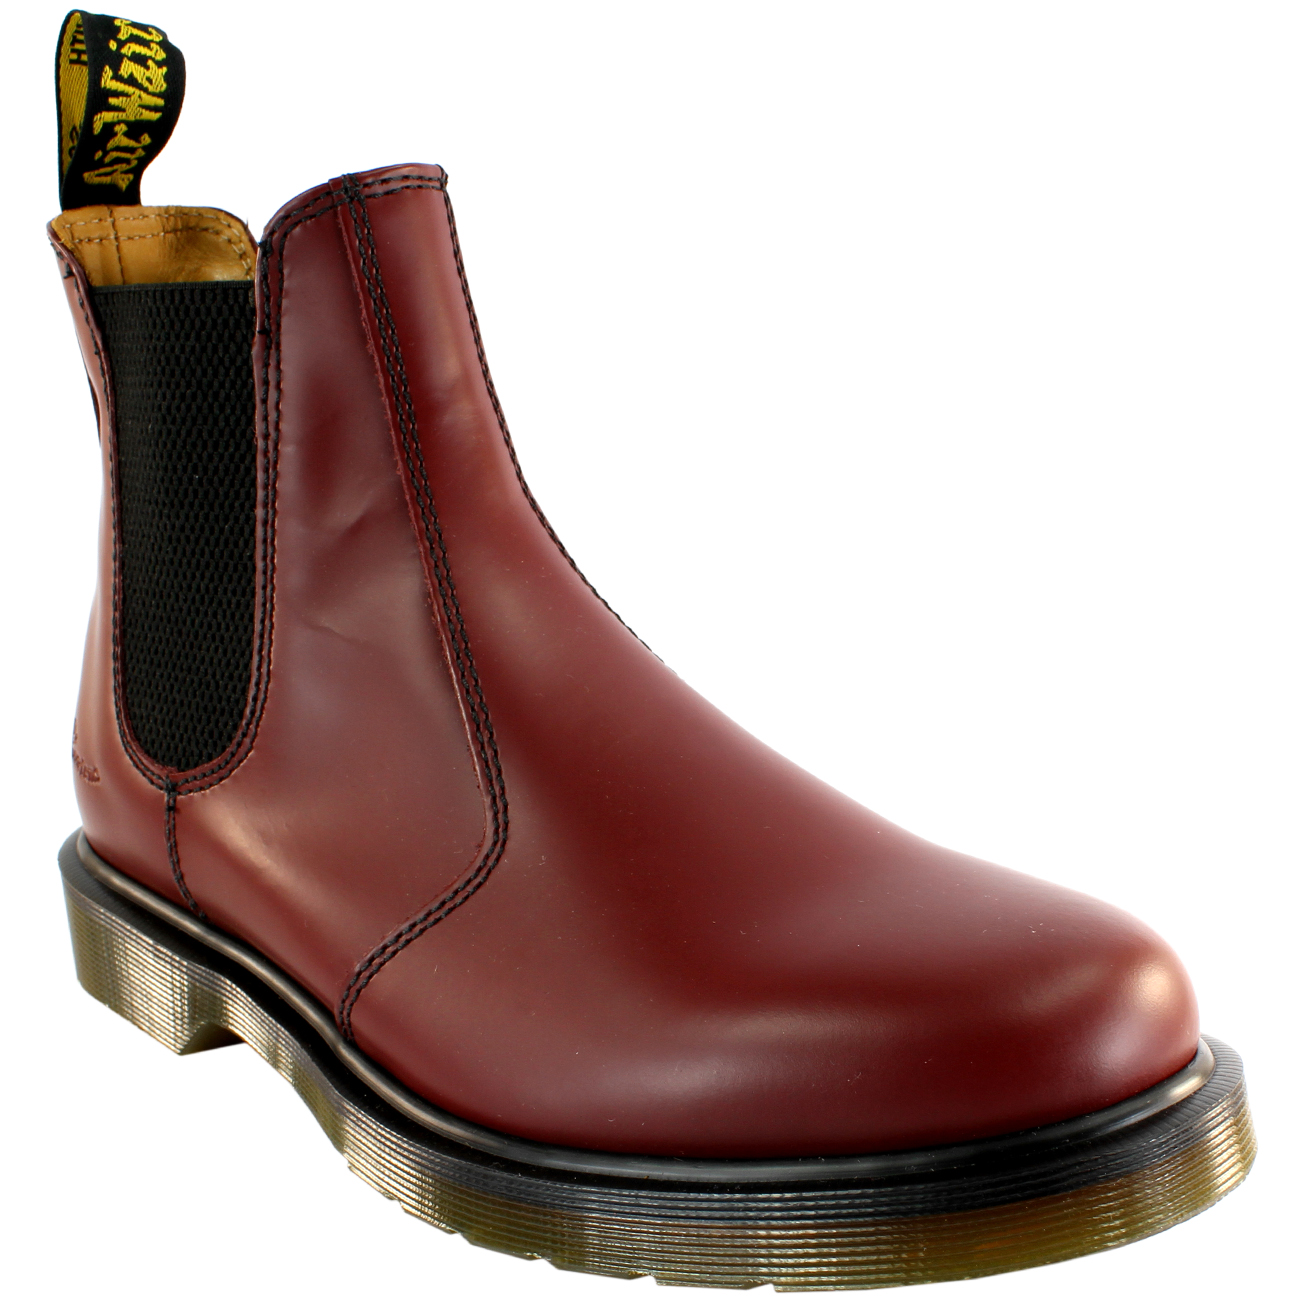 8274bd6137a Mens Dr Martens 2976 Classic Chelsea Style Leather Ankle High Boot ...